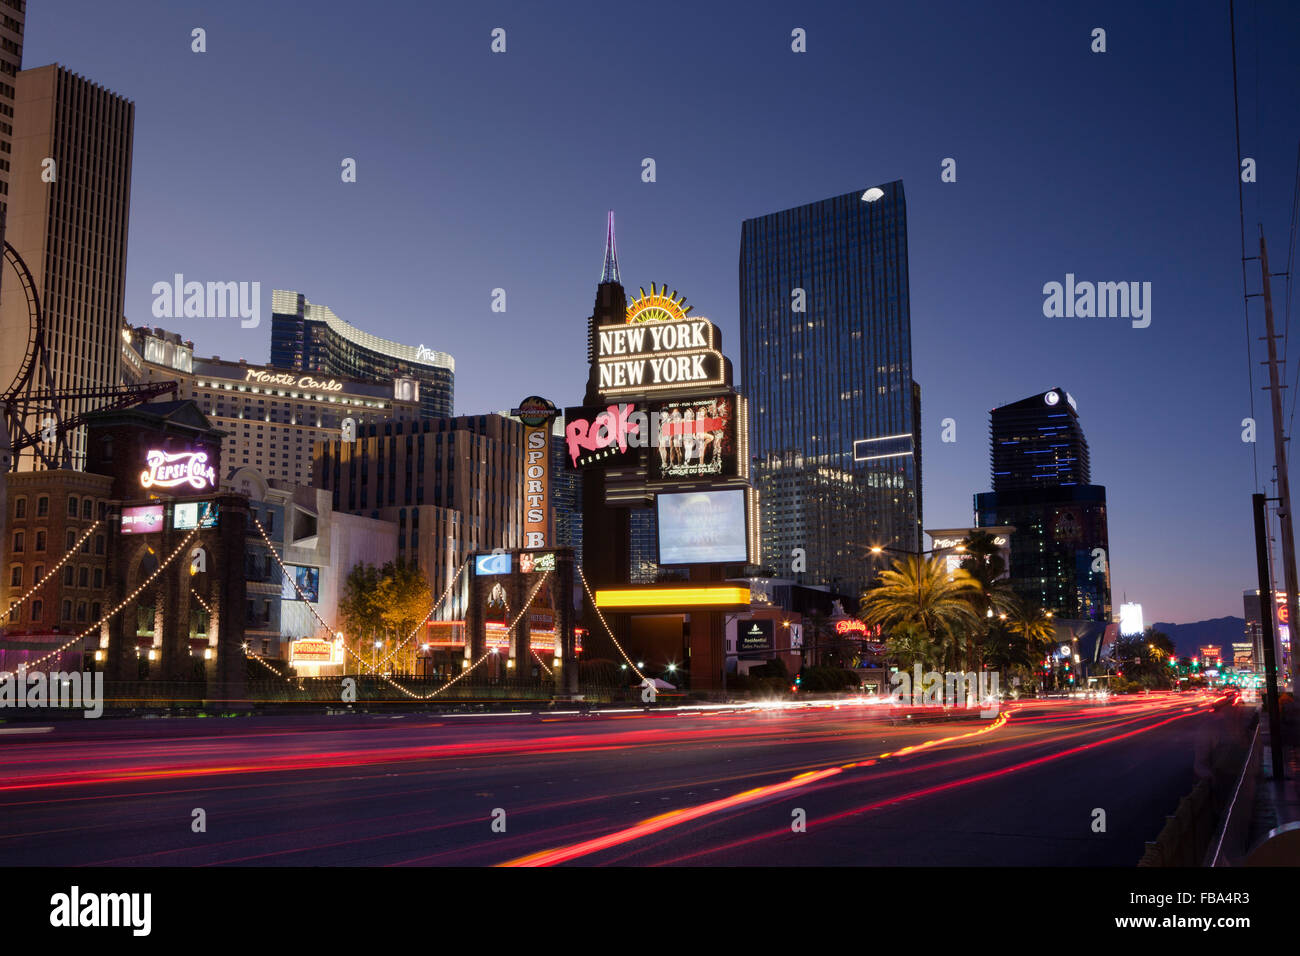 USA, Nevada, Las Vegas, View of city street at nigh Photo Stock